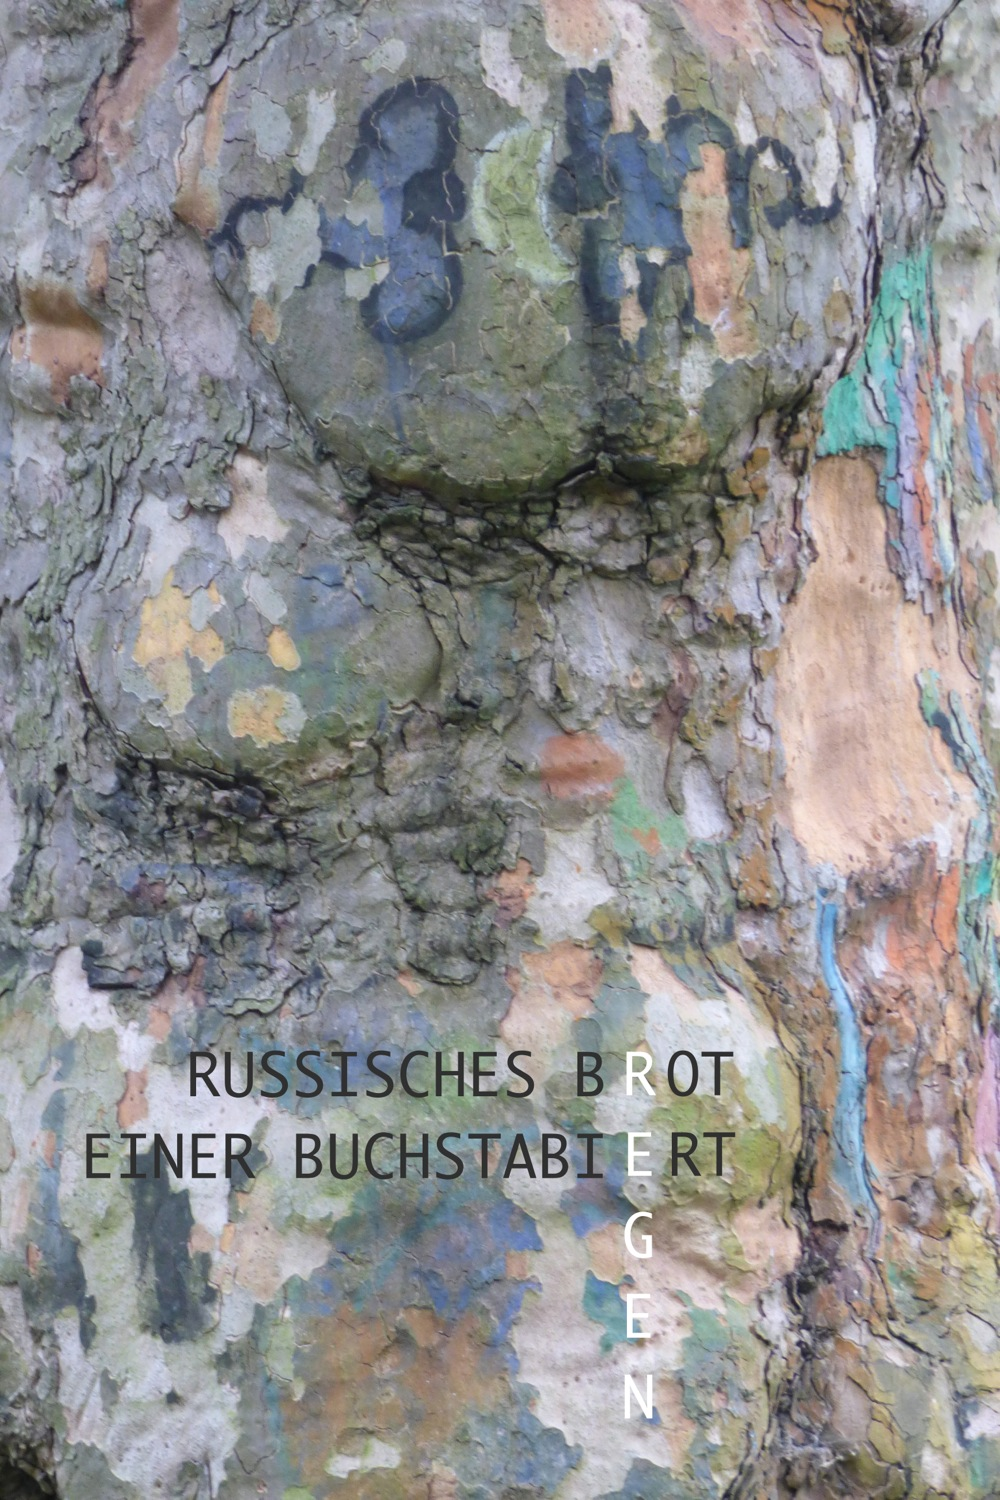 russisches Brot